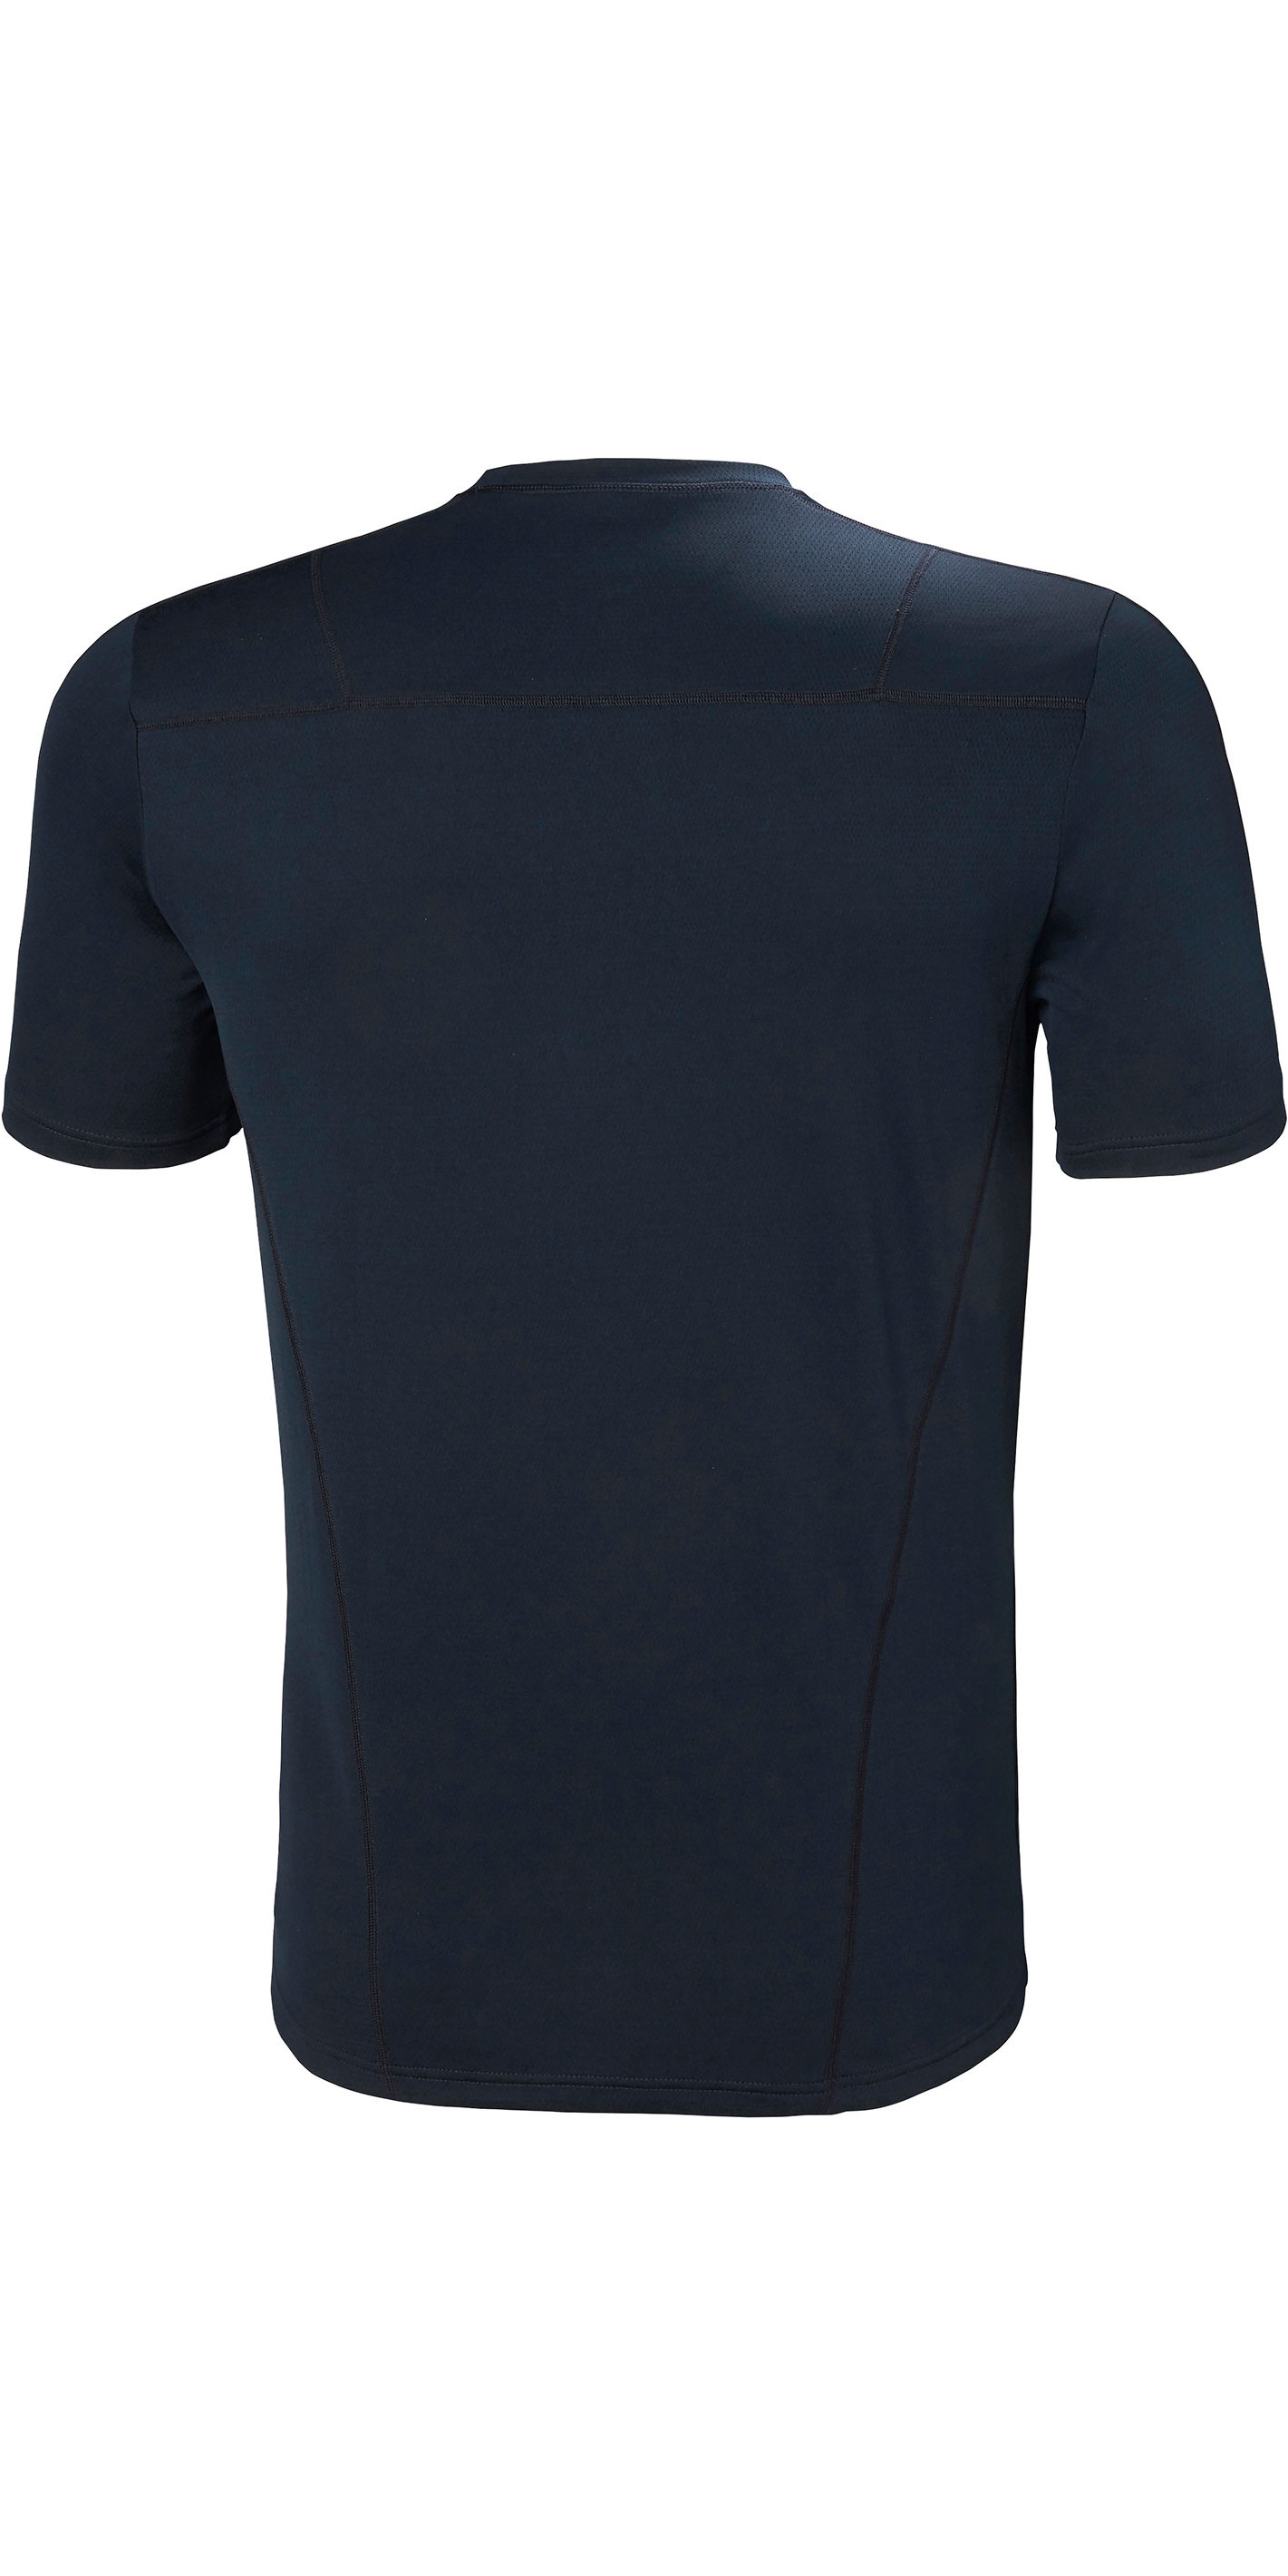 2019 Helly Hansen Mens Lifa Active Light Short Sleeve T-Shirt Navy 49330